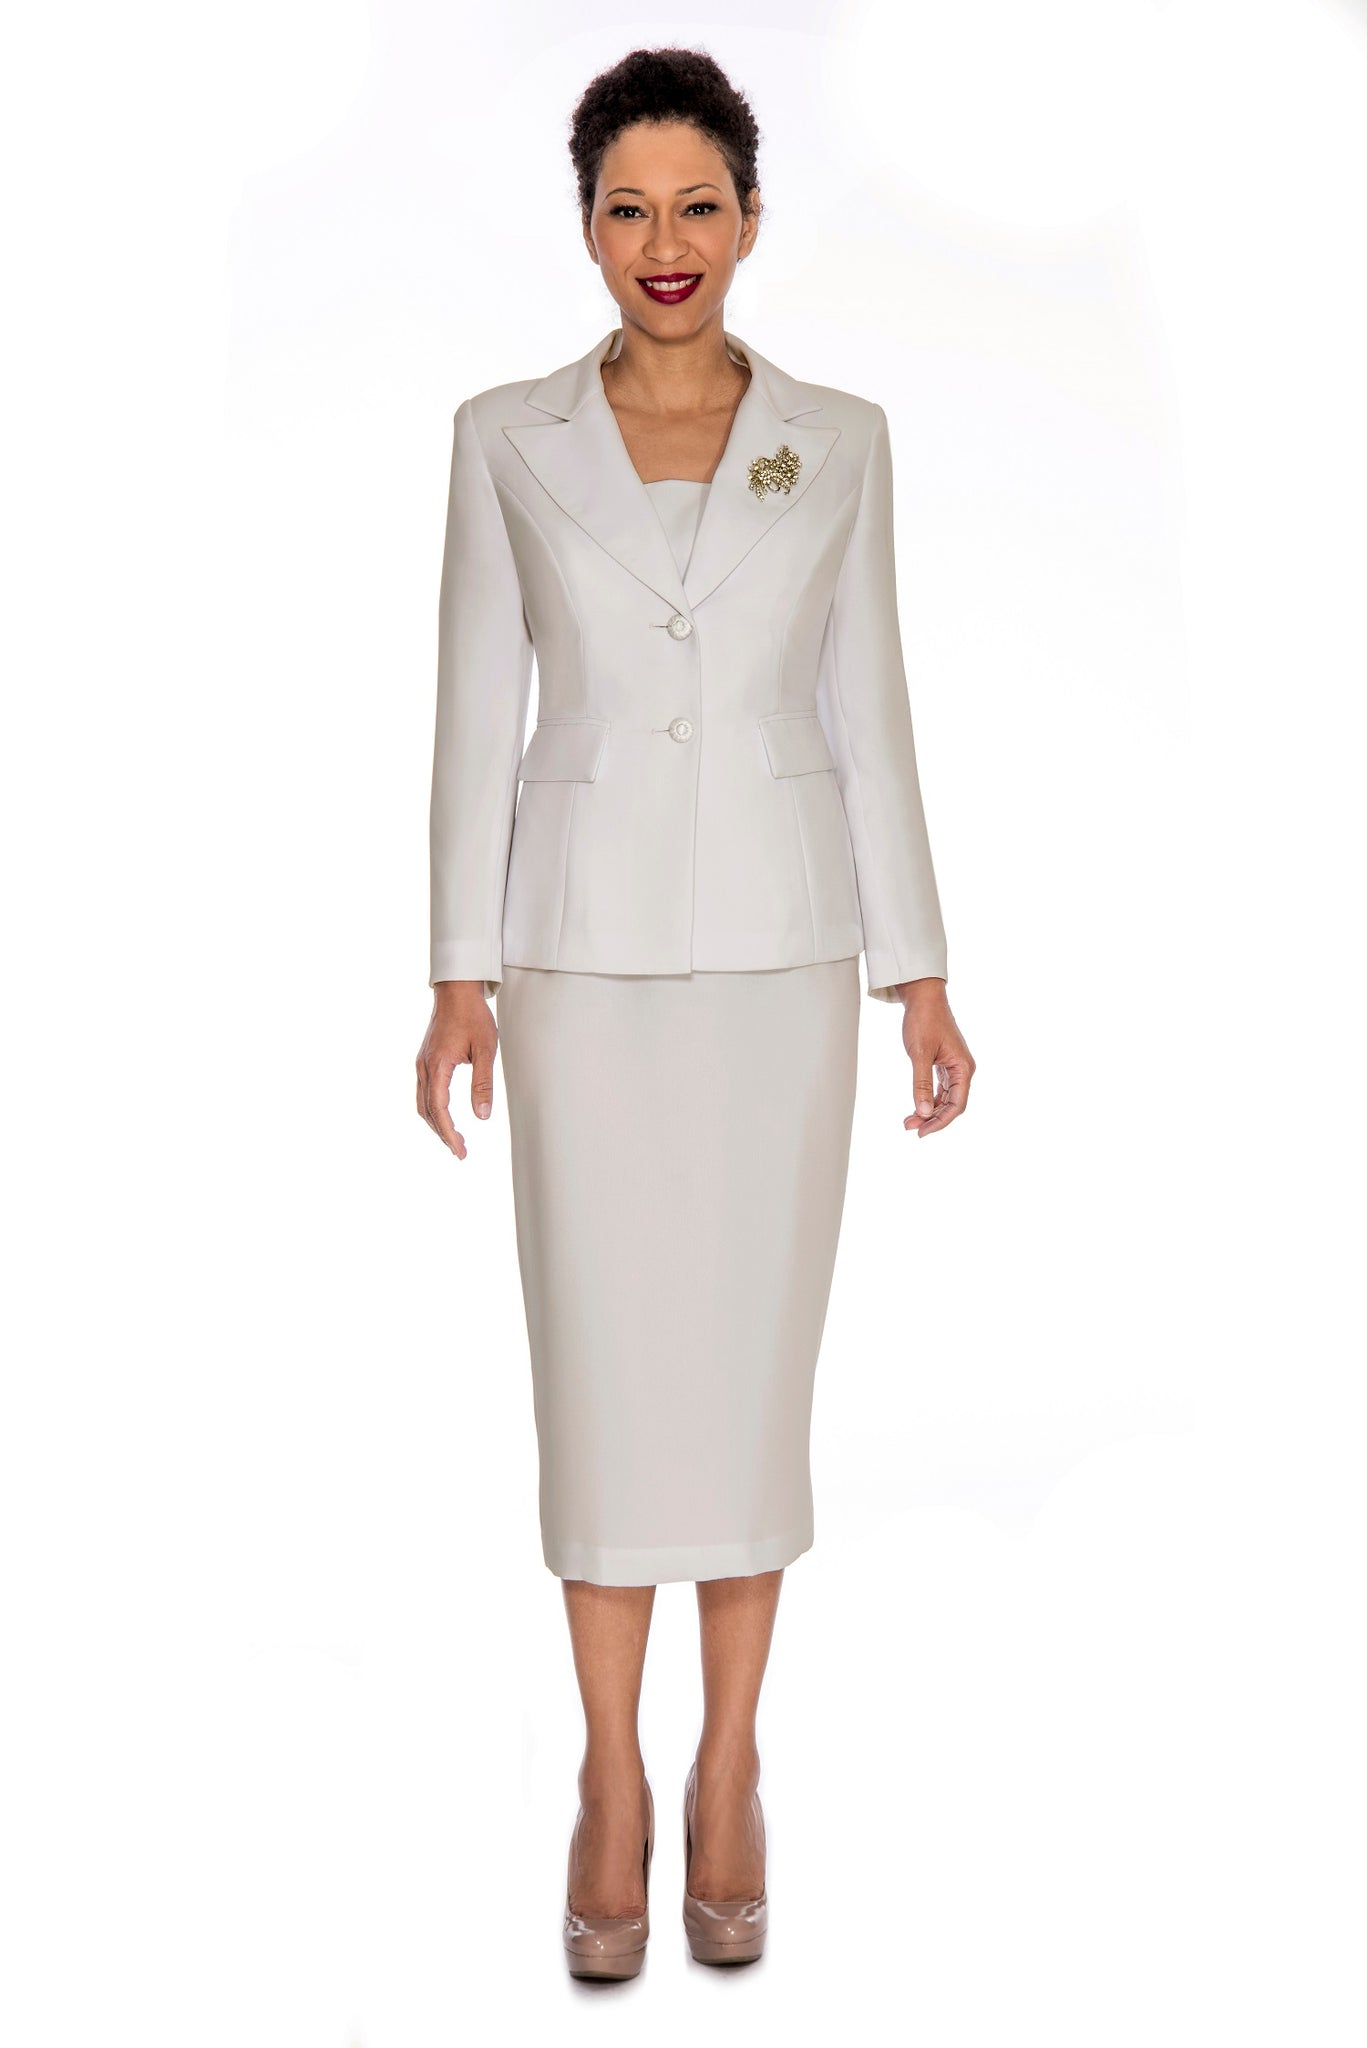 Giovanna Church Suit 0710-Ivory - Church Suits For Less